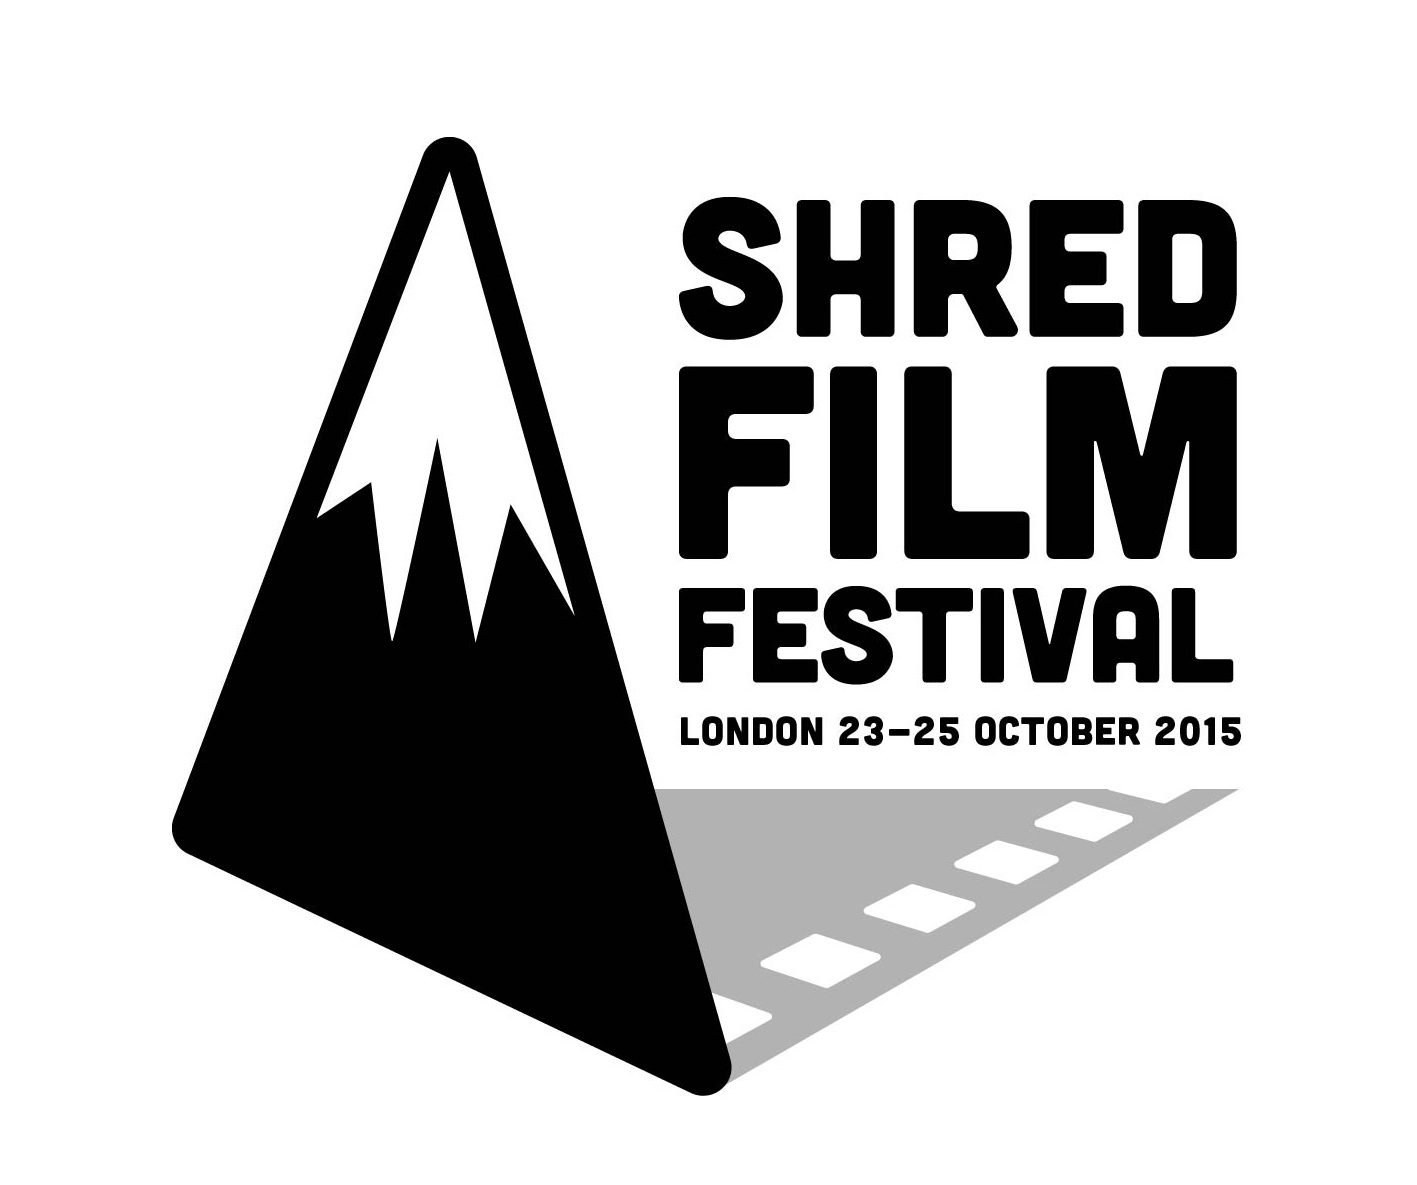 shred film festival london